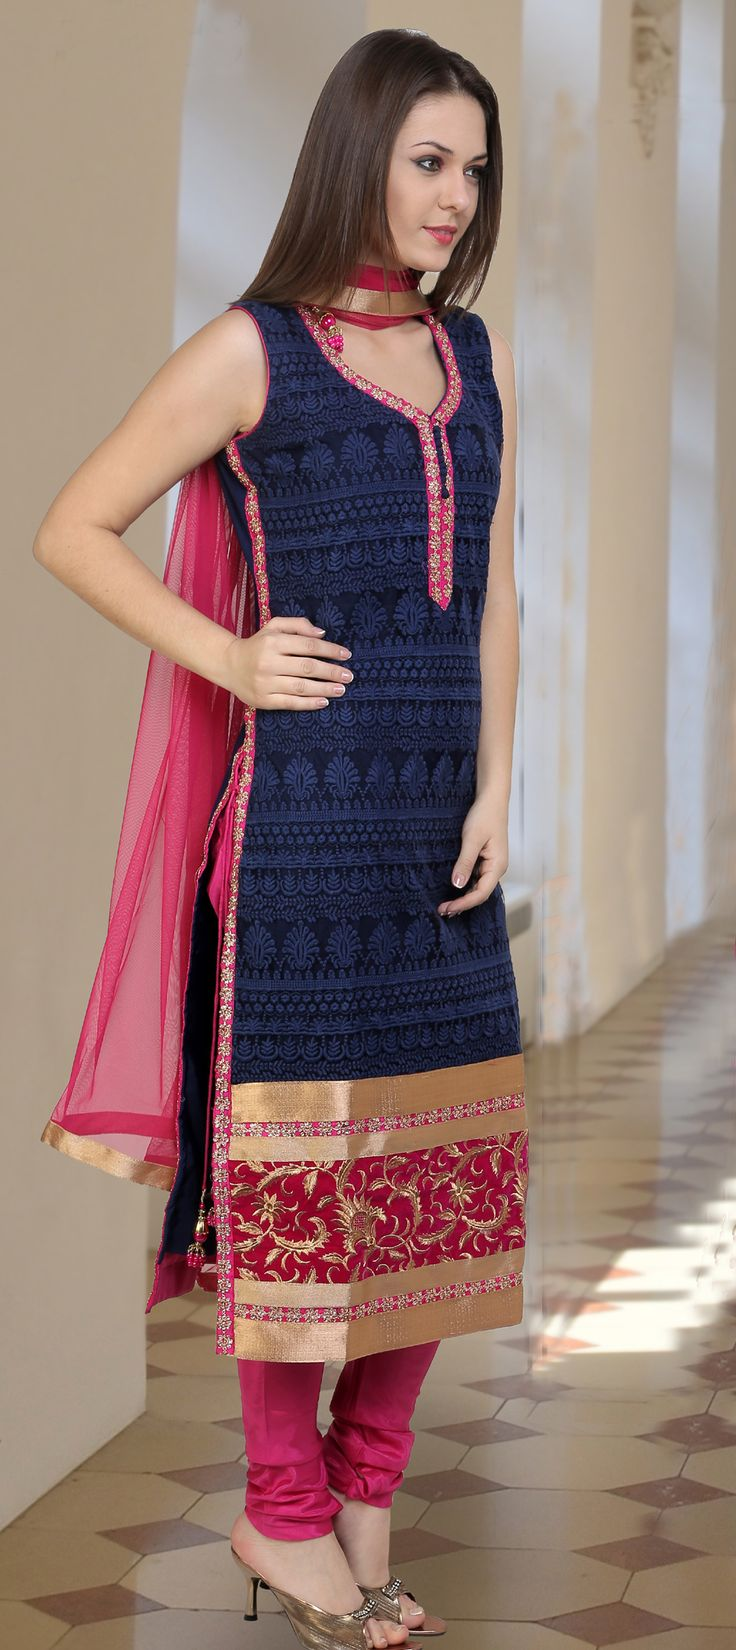 451682: Blue color family stitched Party Wear Salwar Kameez .